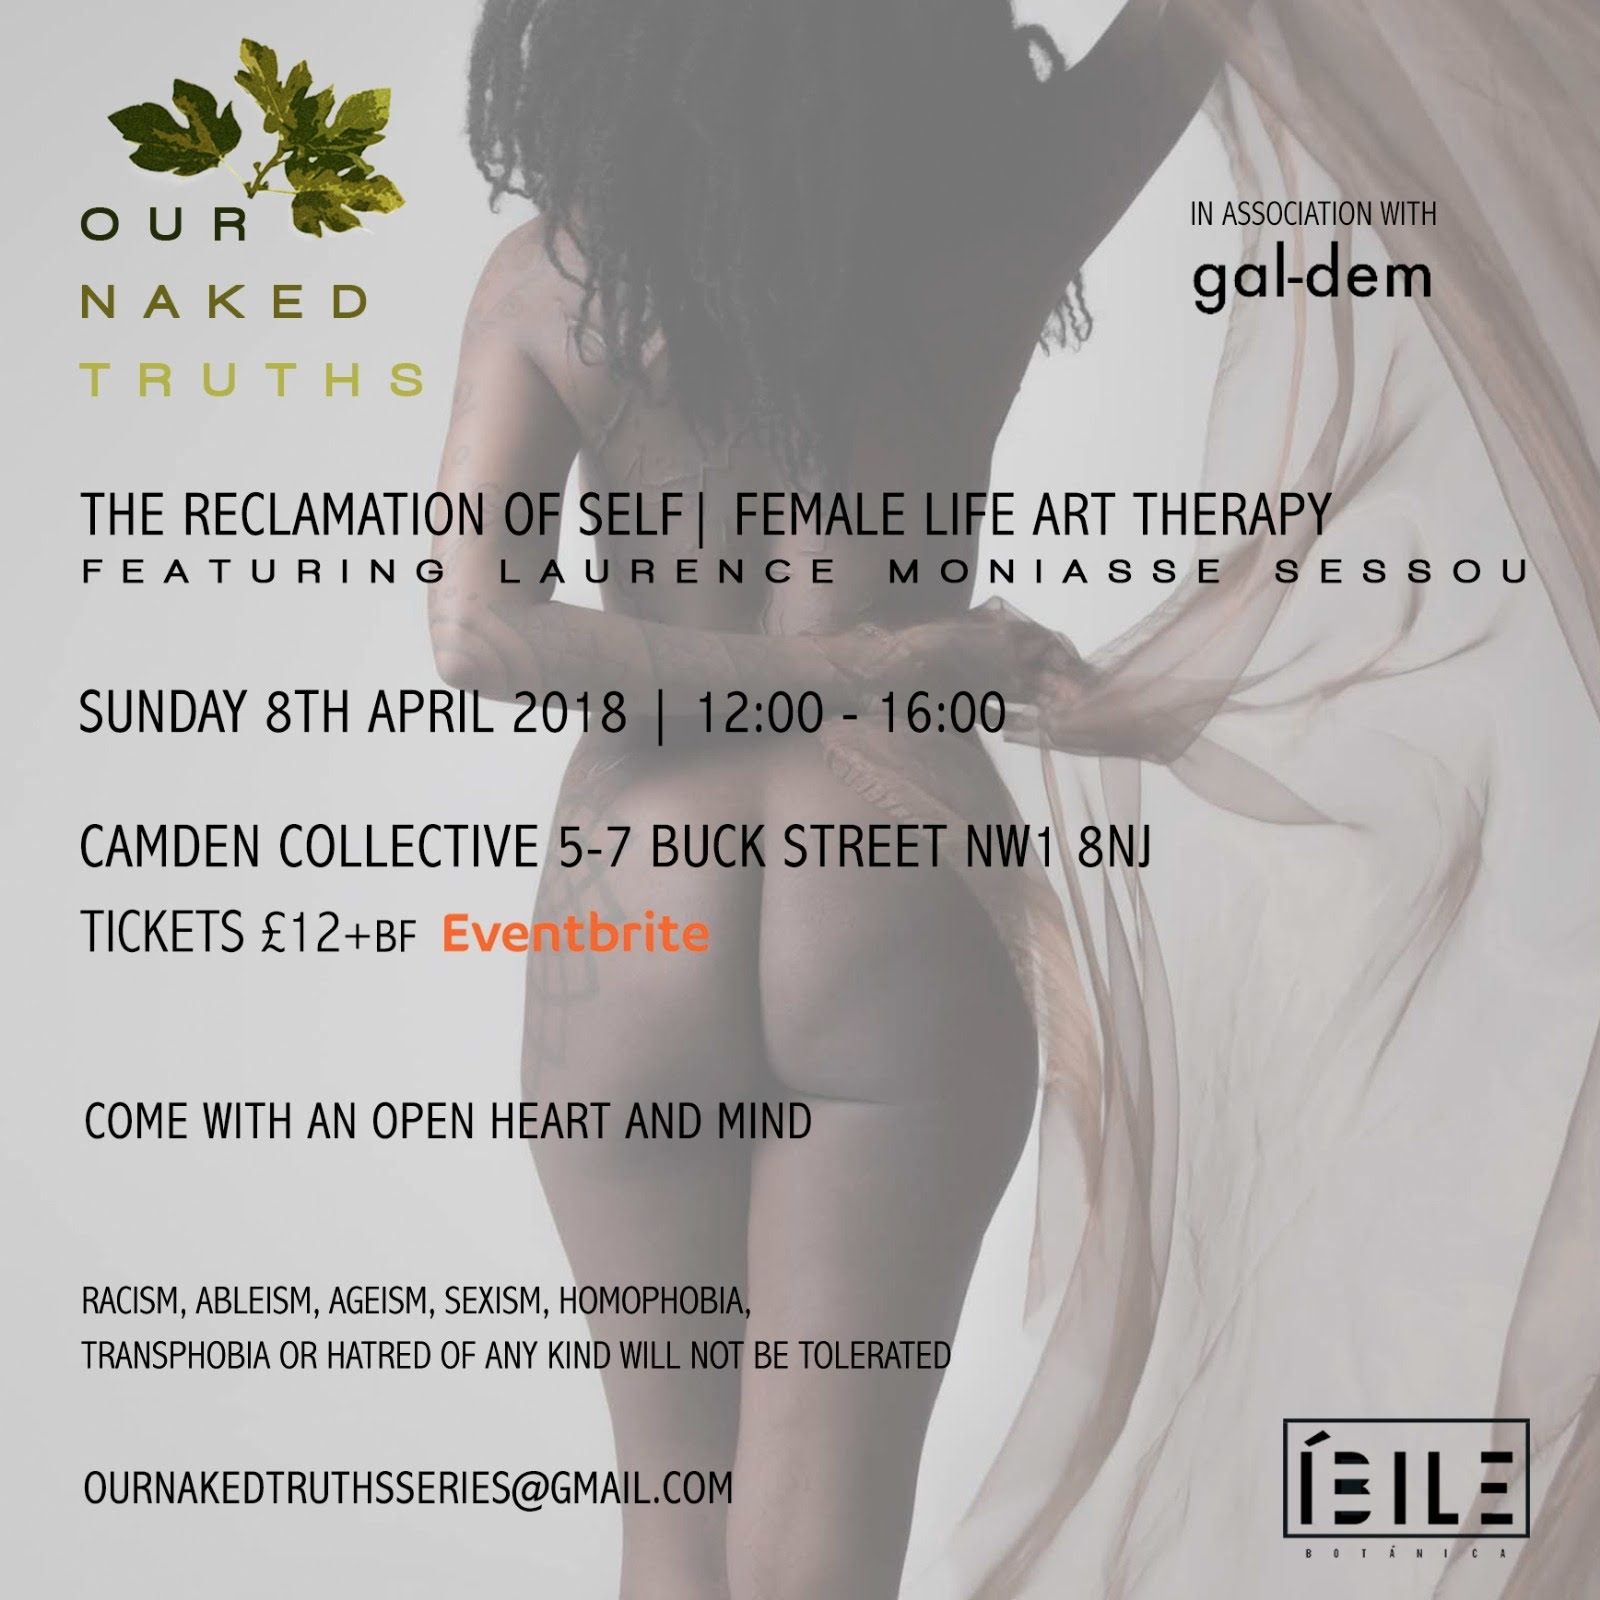 OUR NAKED TRUTHS APRIL EVENT